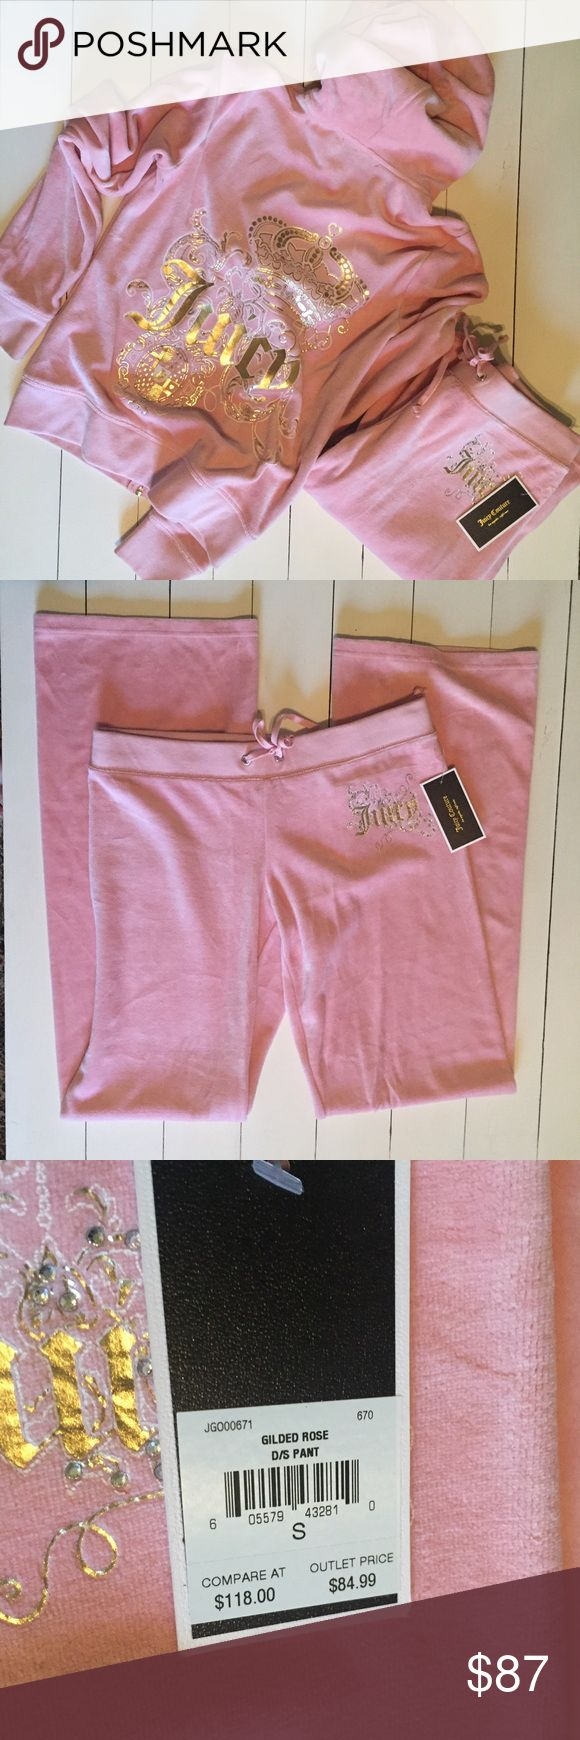 Pink Juicy Couture Track Suit Size S Pants are brand new with tags, jacket has only been worn a few times. Great Condition Juicy Couture Pants Track Pants & Joggers